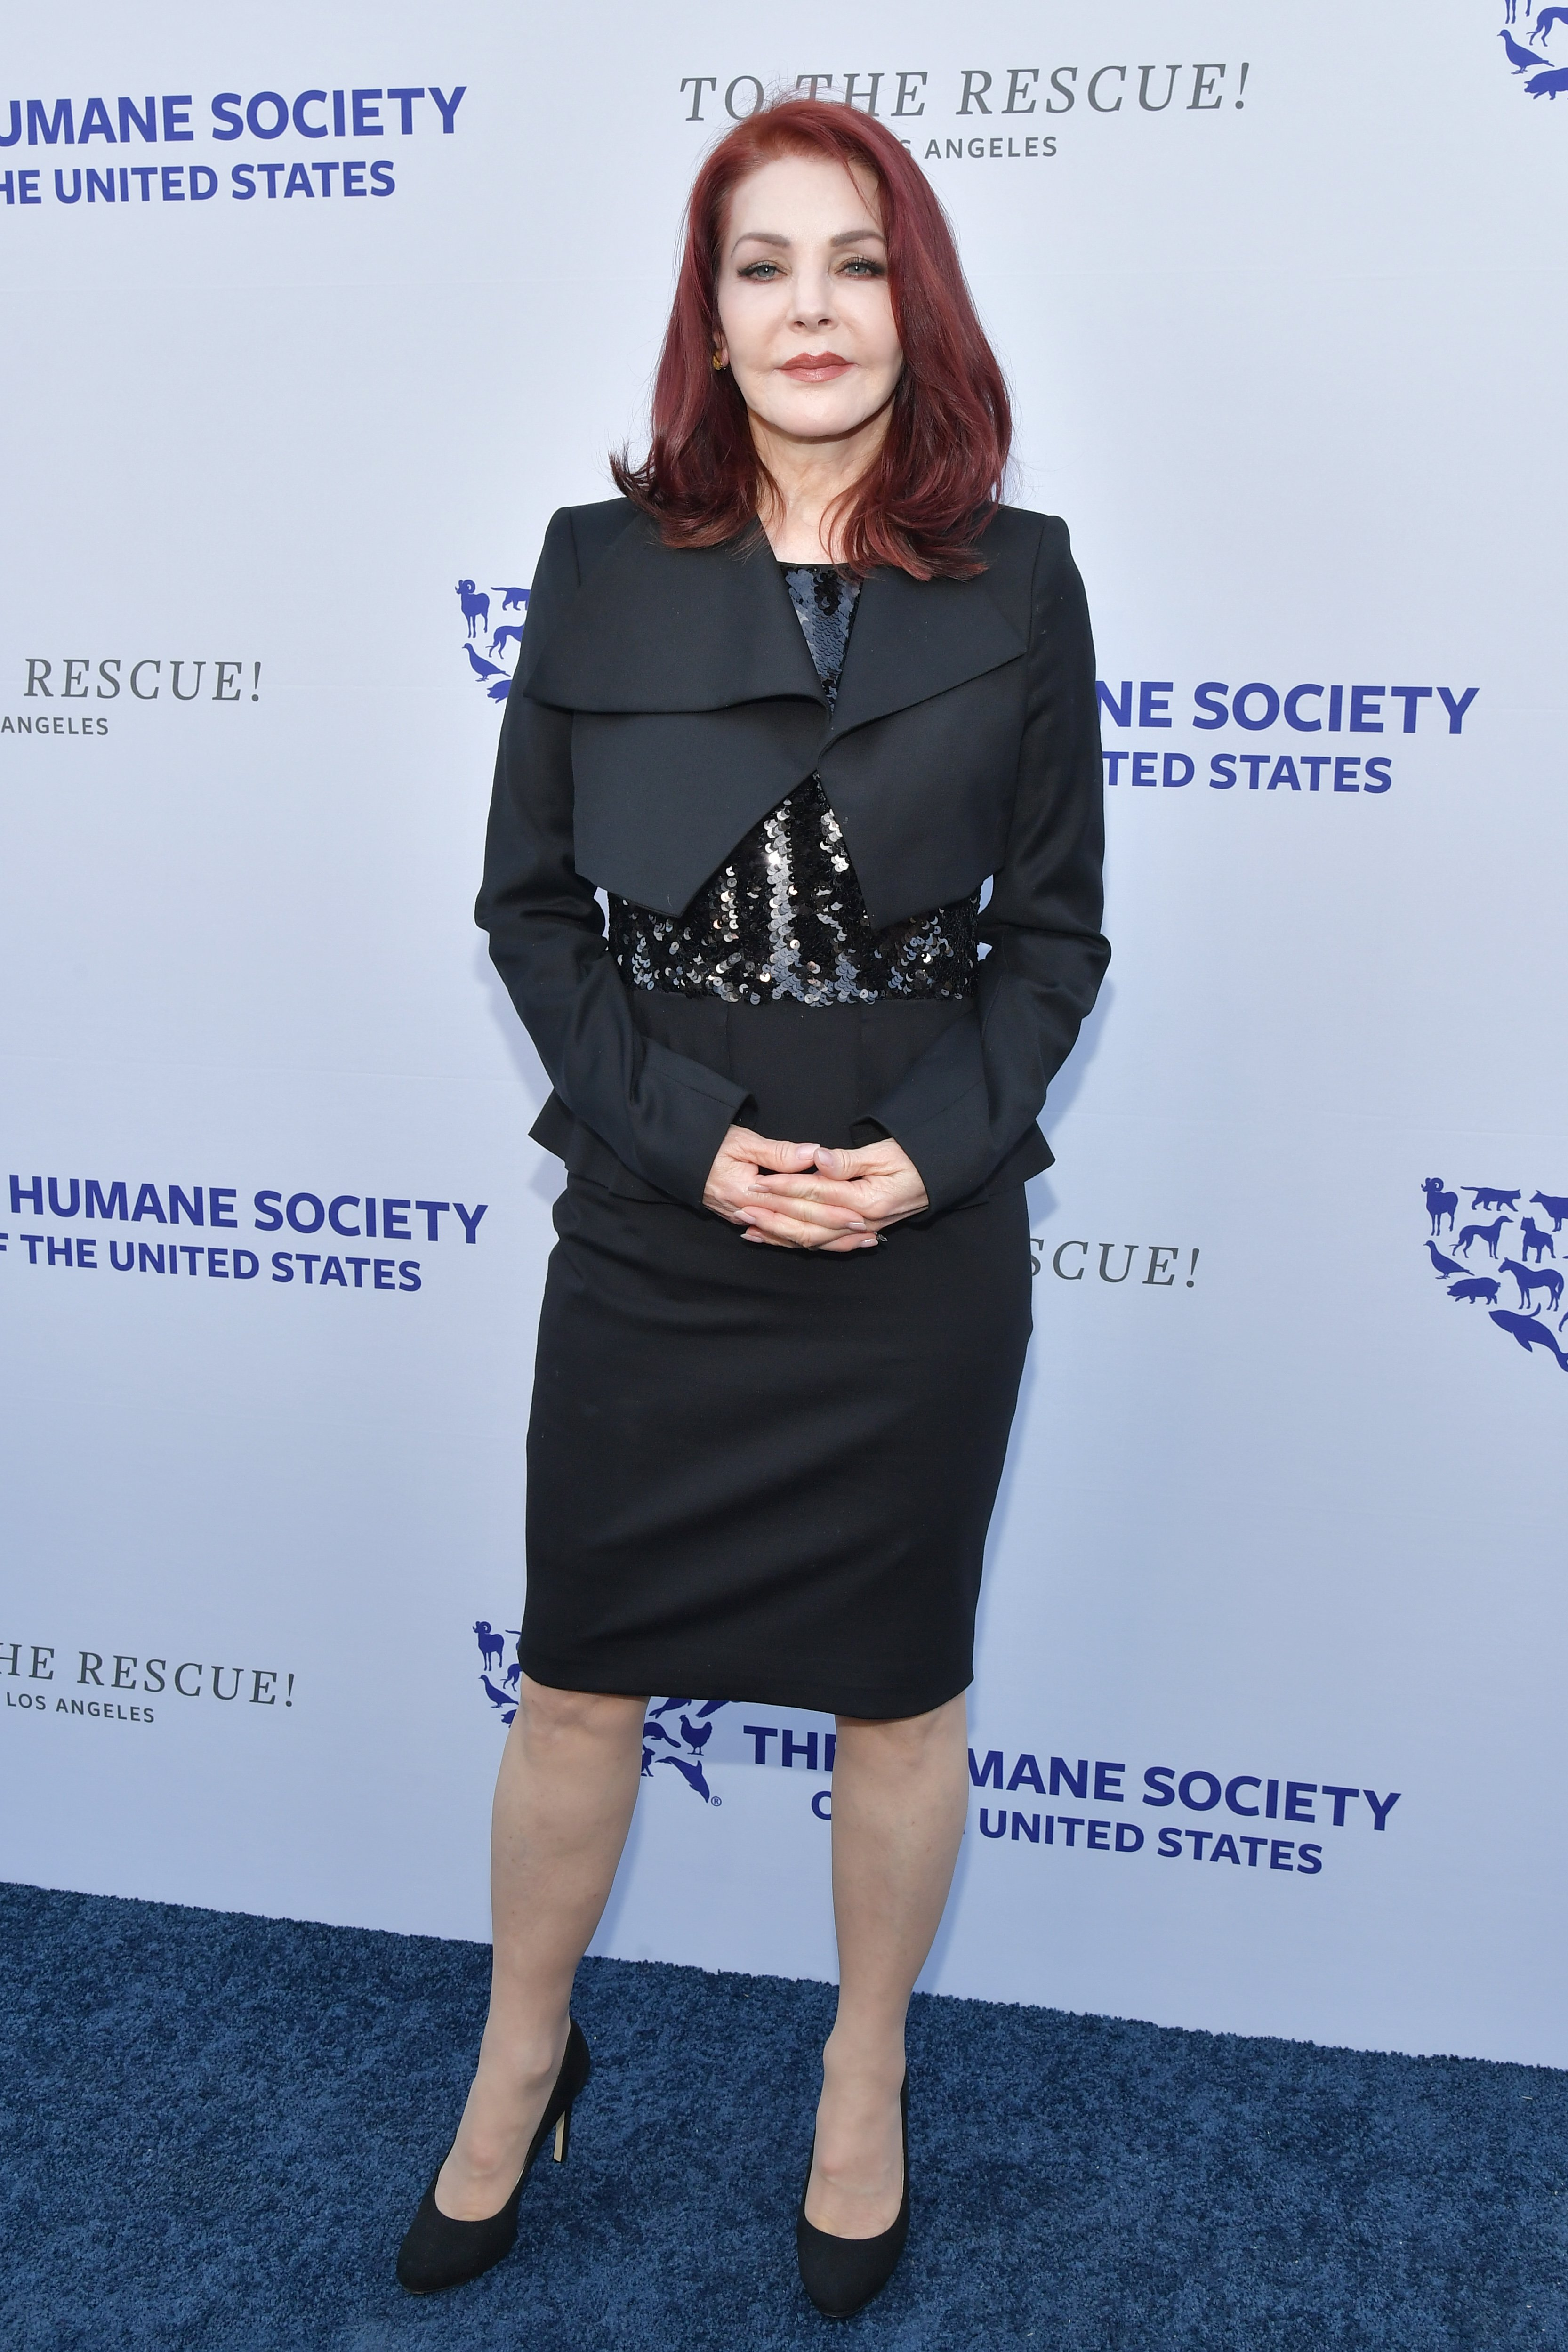 Priscilla Presley attends The Humane Society Of The United States To The Rescue! Los Angeles Gala on May 04, 2019, in Hollywood, California. | Source: Getty Images.